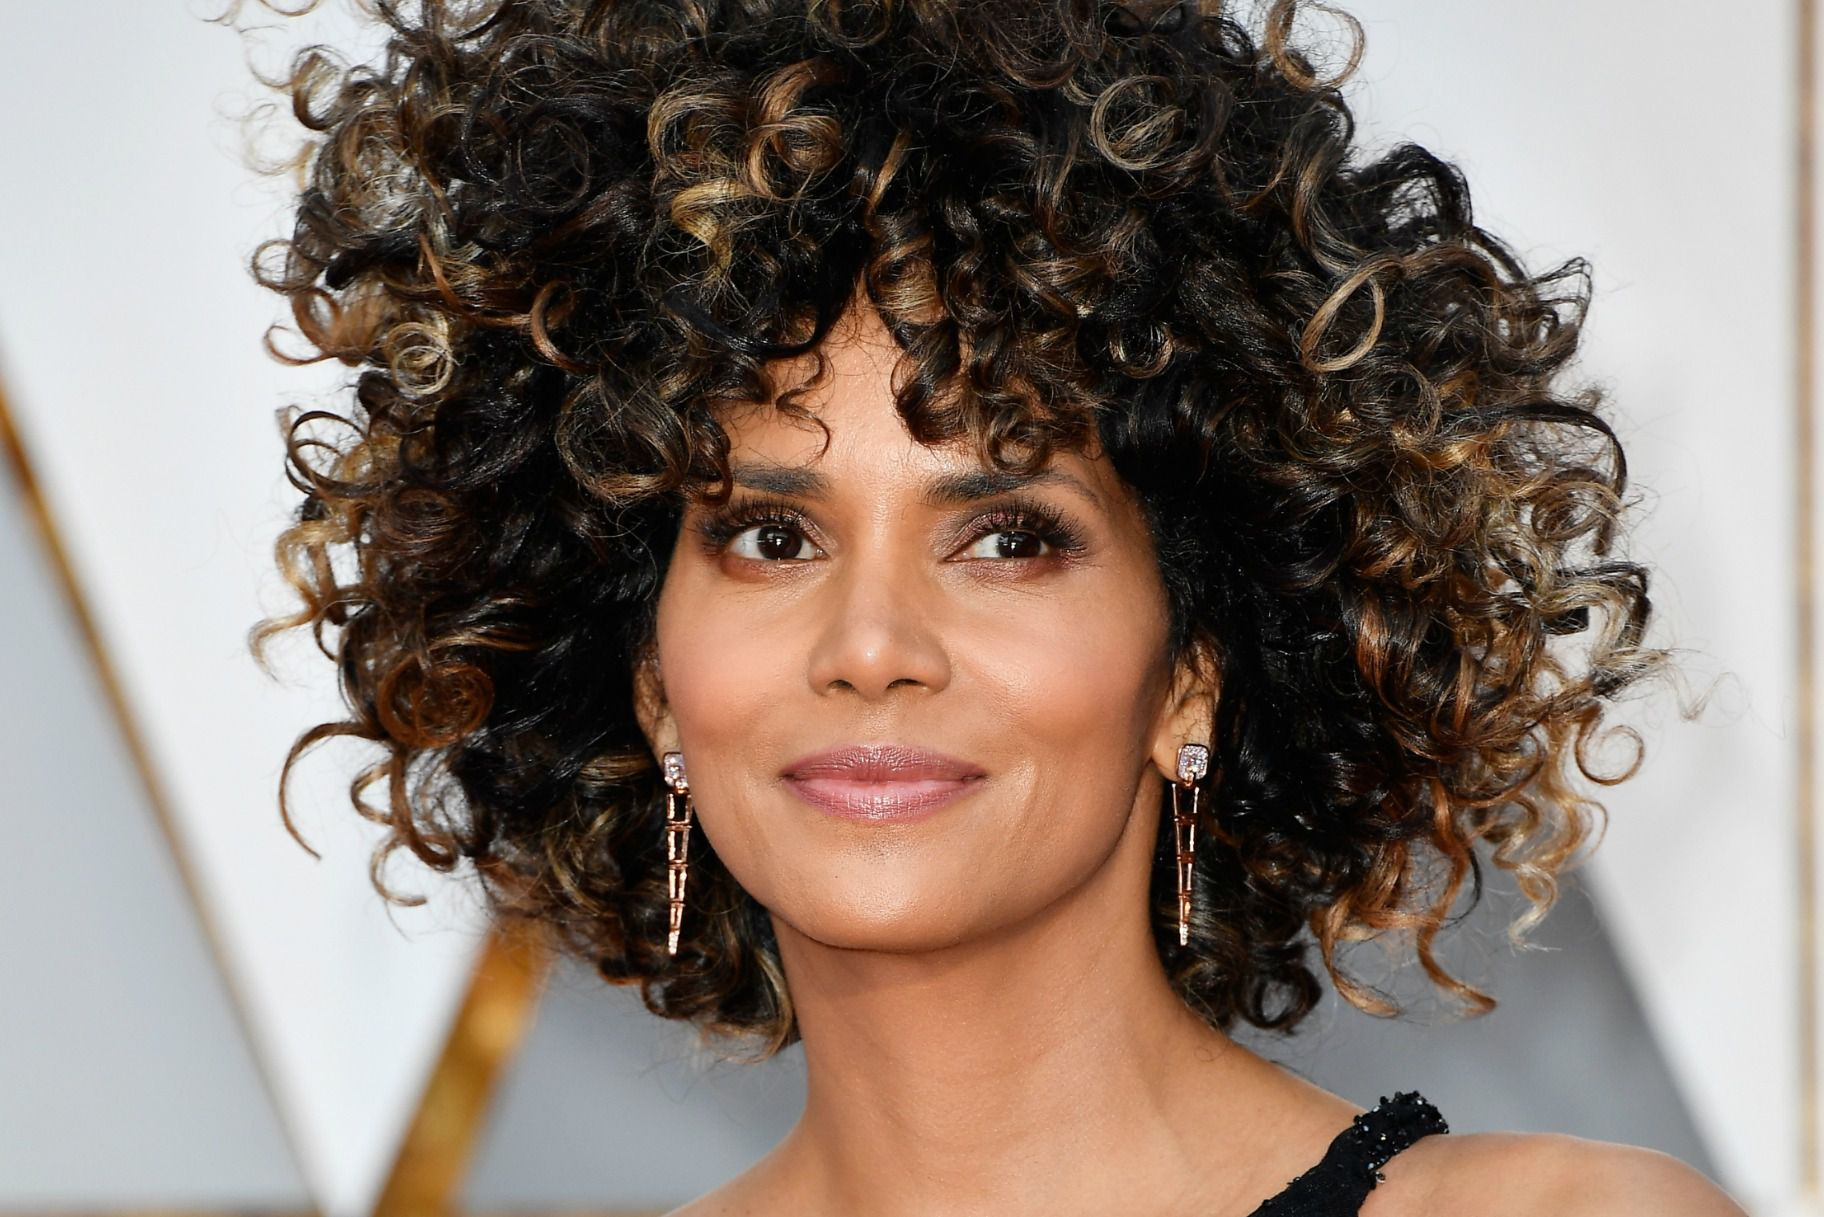 Halle Berry Curly Hairstyle Hd Image 16 On Wallpapersqq